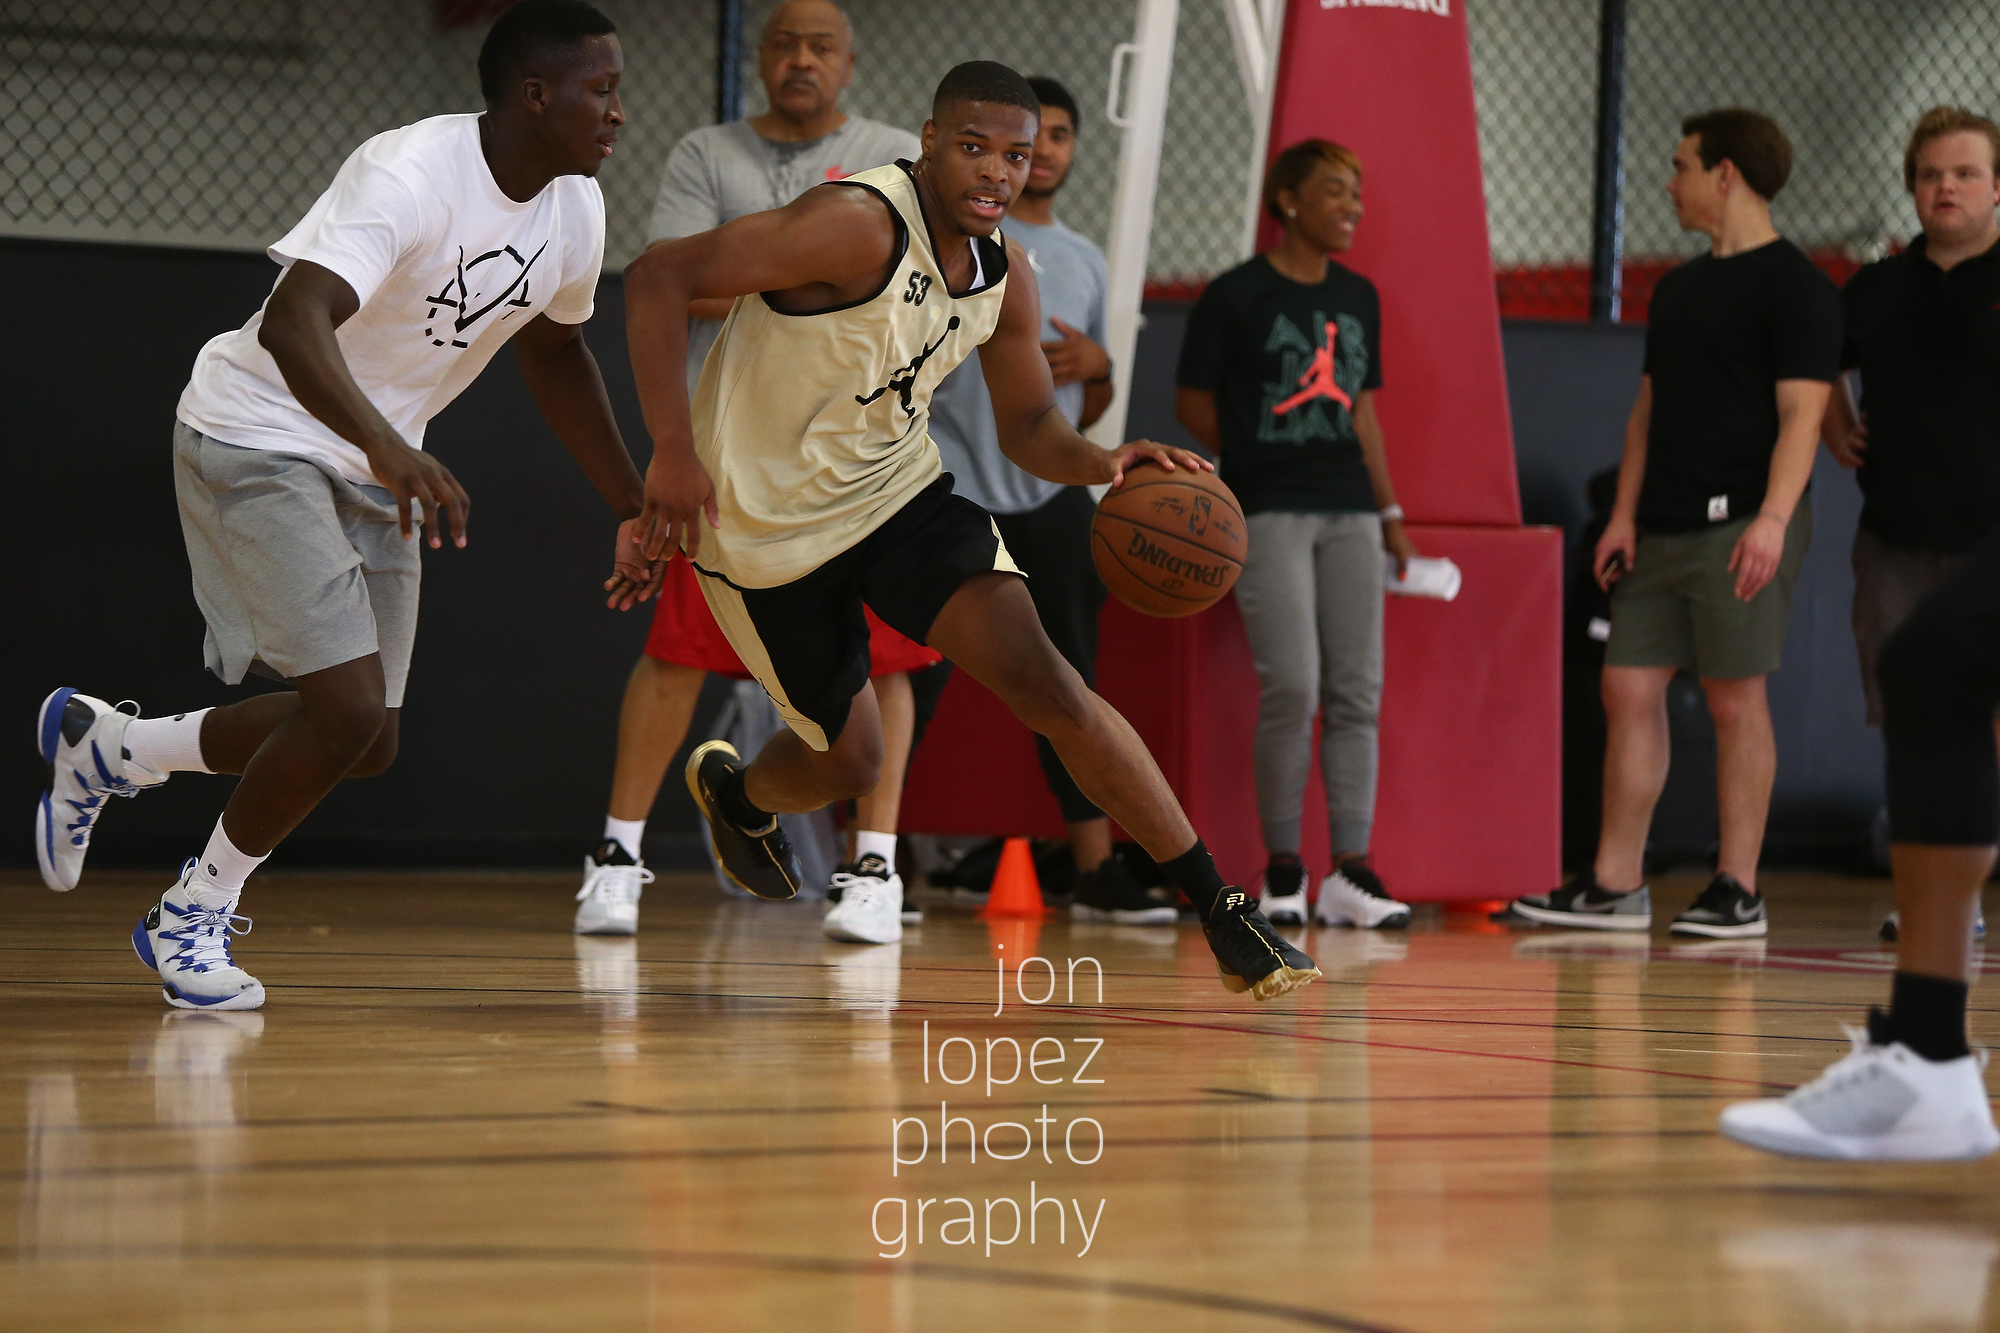 With CP3 nursing a hand injury, Victor Oladipo took on the challenge of giving the top point guards in America some hands on experience with NBA talent. Here Dennis Smith dribbles while being defended by the Oklahoma City guard.